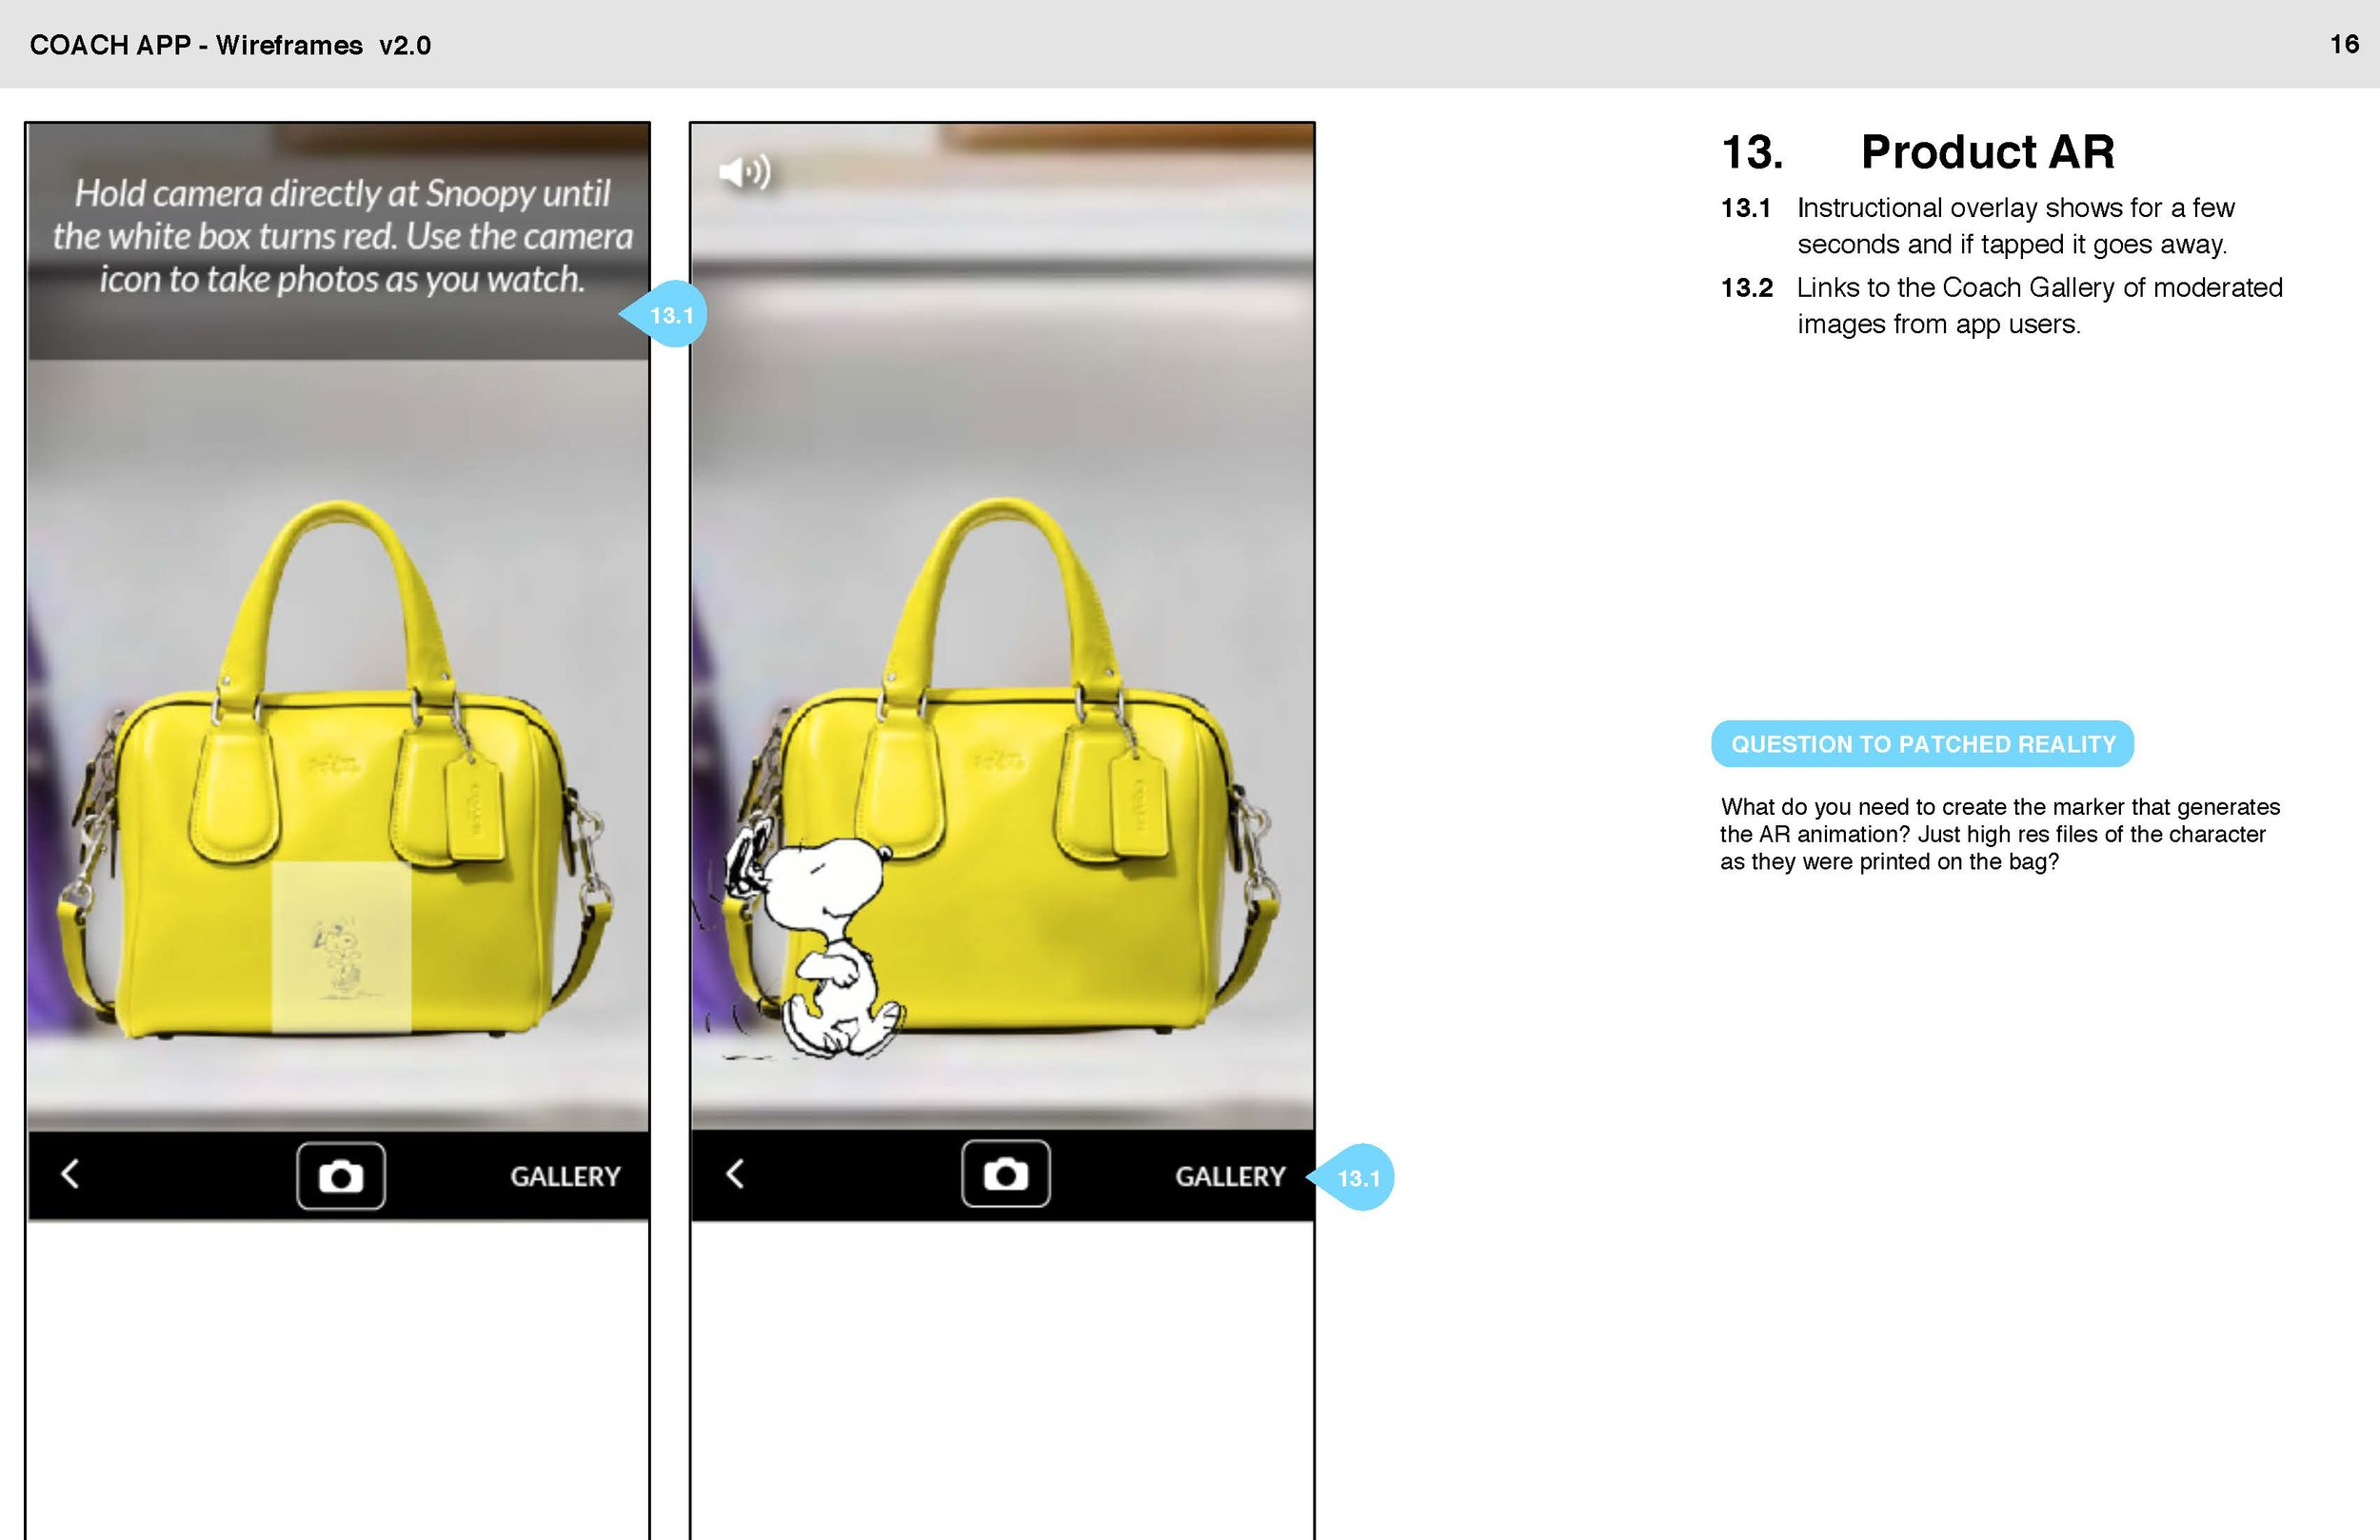 Coach-App-requirements-v2.1_Page_16.jpg